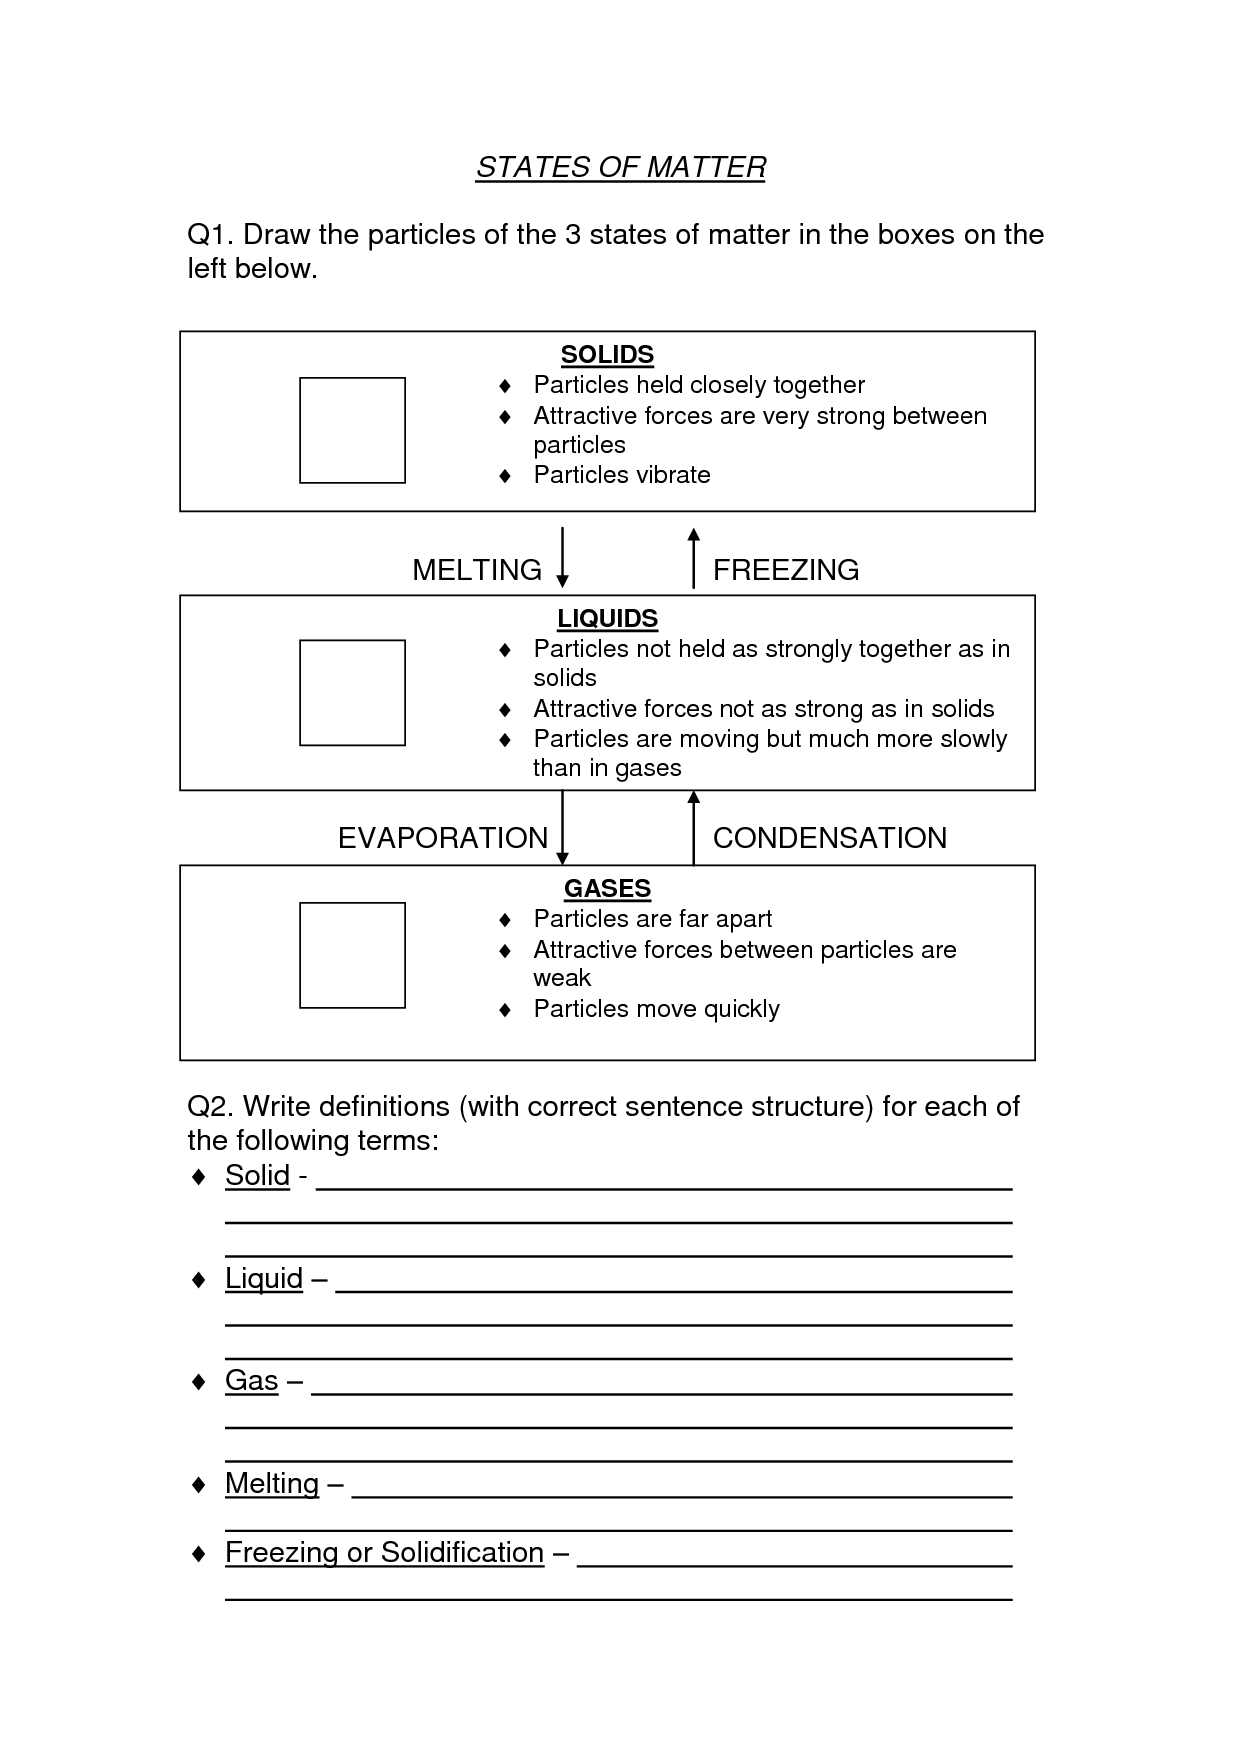 worksheets on states of matter for high school - Google Search   Science  worksheets [ 1754 x 1240 Pixel ]